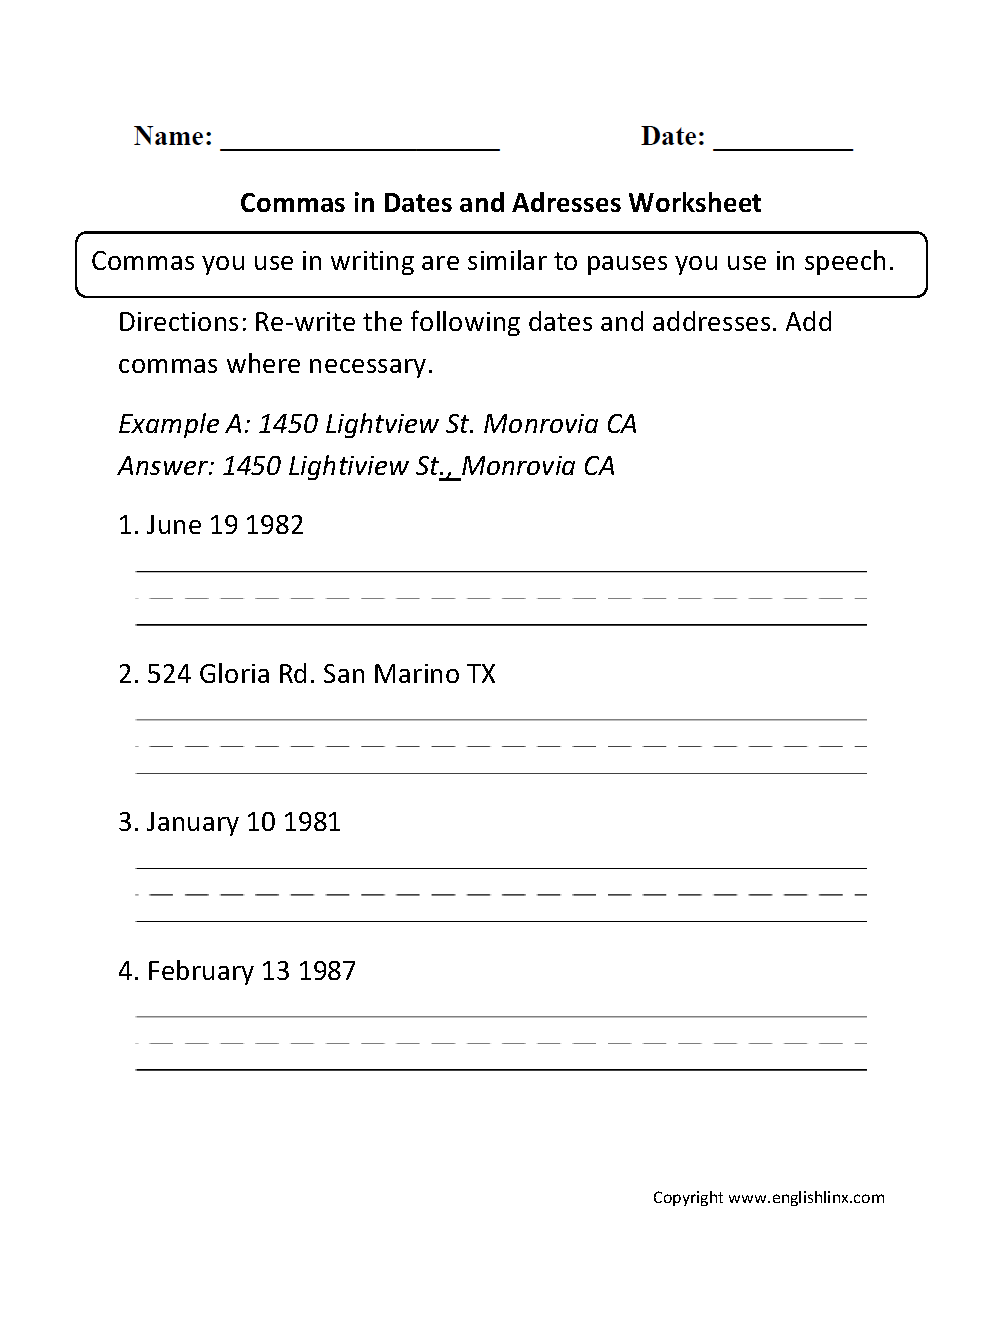 Workbooks punctuation comma worksheets : Englishlinx.com | Commas Worksheets